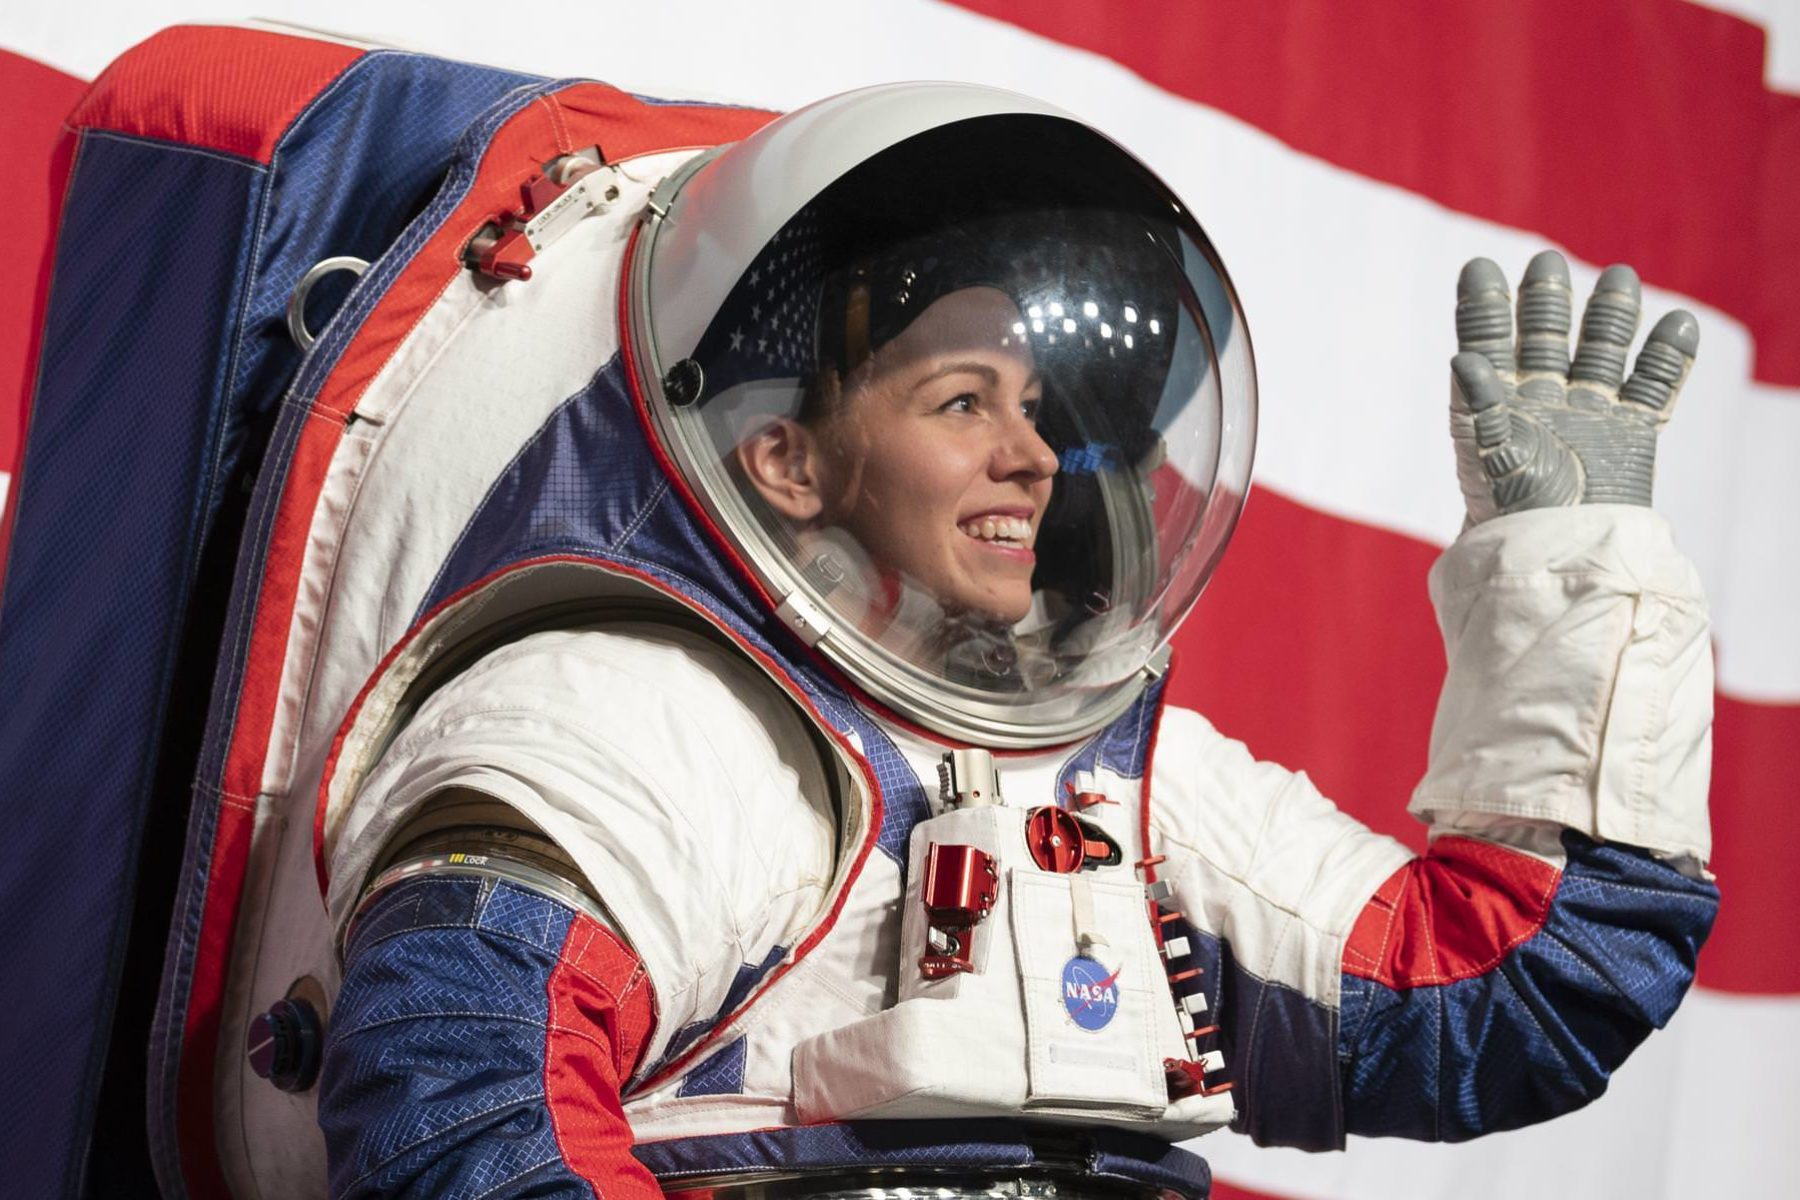 Kristine Davis, a spacesuit engineer at NASA's Johnson Space Center, wearing a ground prototype of NASA's new Exploration Extravehicular Mobility Unit (xEMU), pictured here waving and smiling during a demonstration of the suit, Tuesday, Oct. 15, 2019 at NASA Headquarters in Washington.